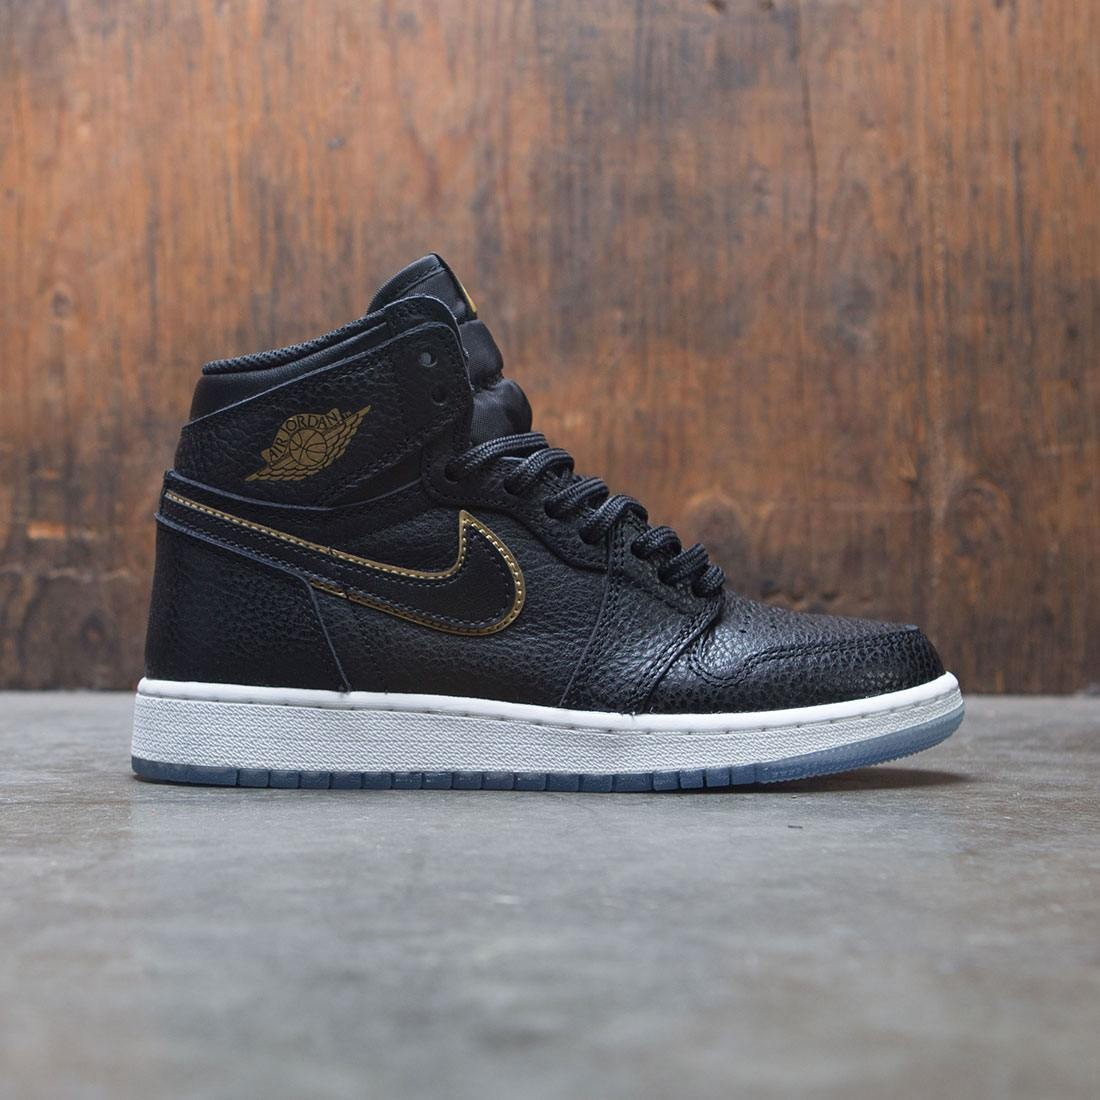 475dac30f7de00 ... italy jordan big kids air jordan 1 retro high og gs black metallic gold  summit white